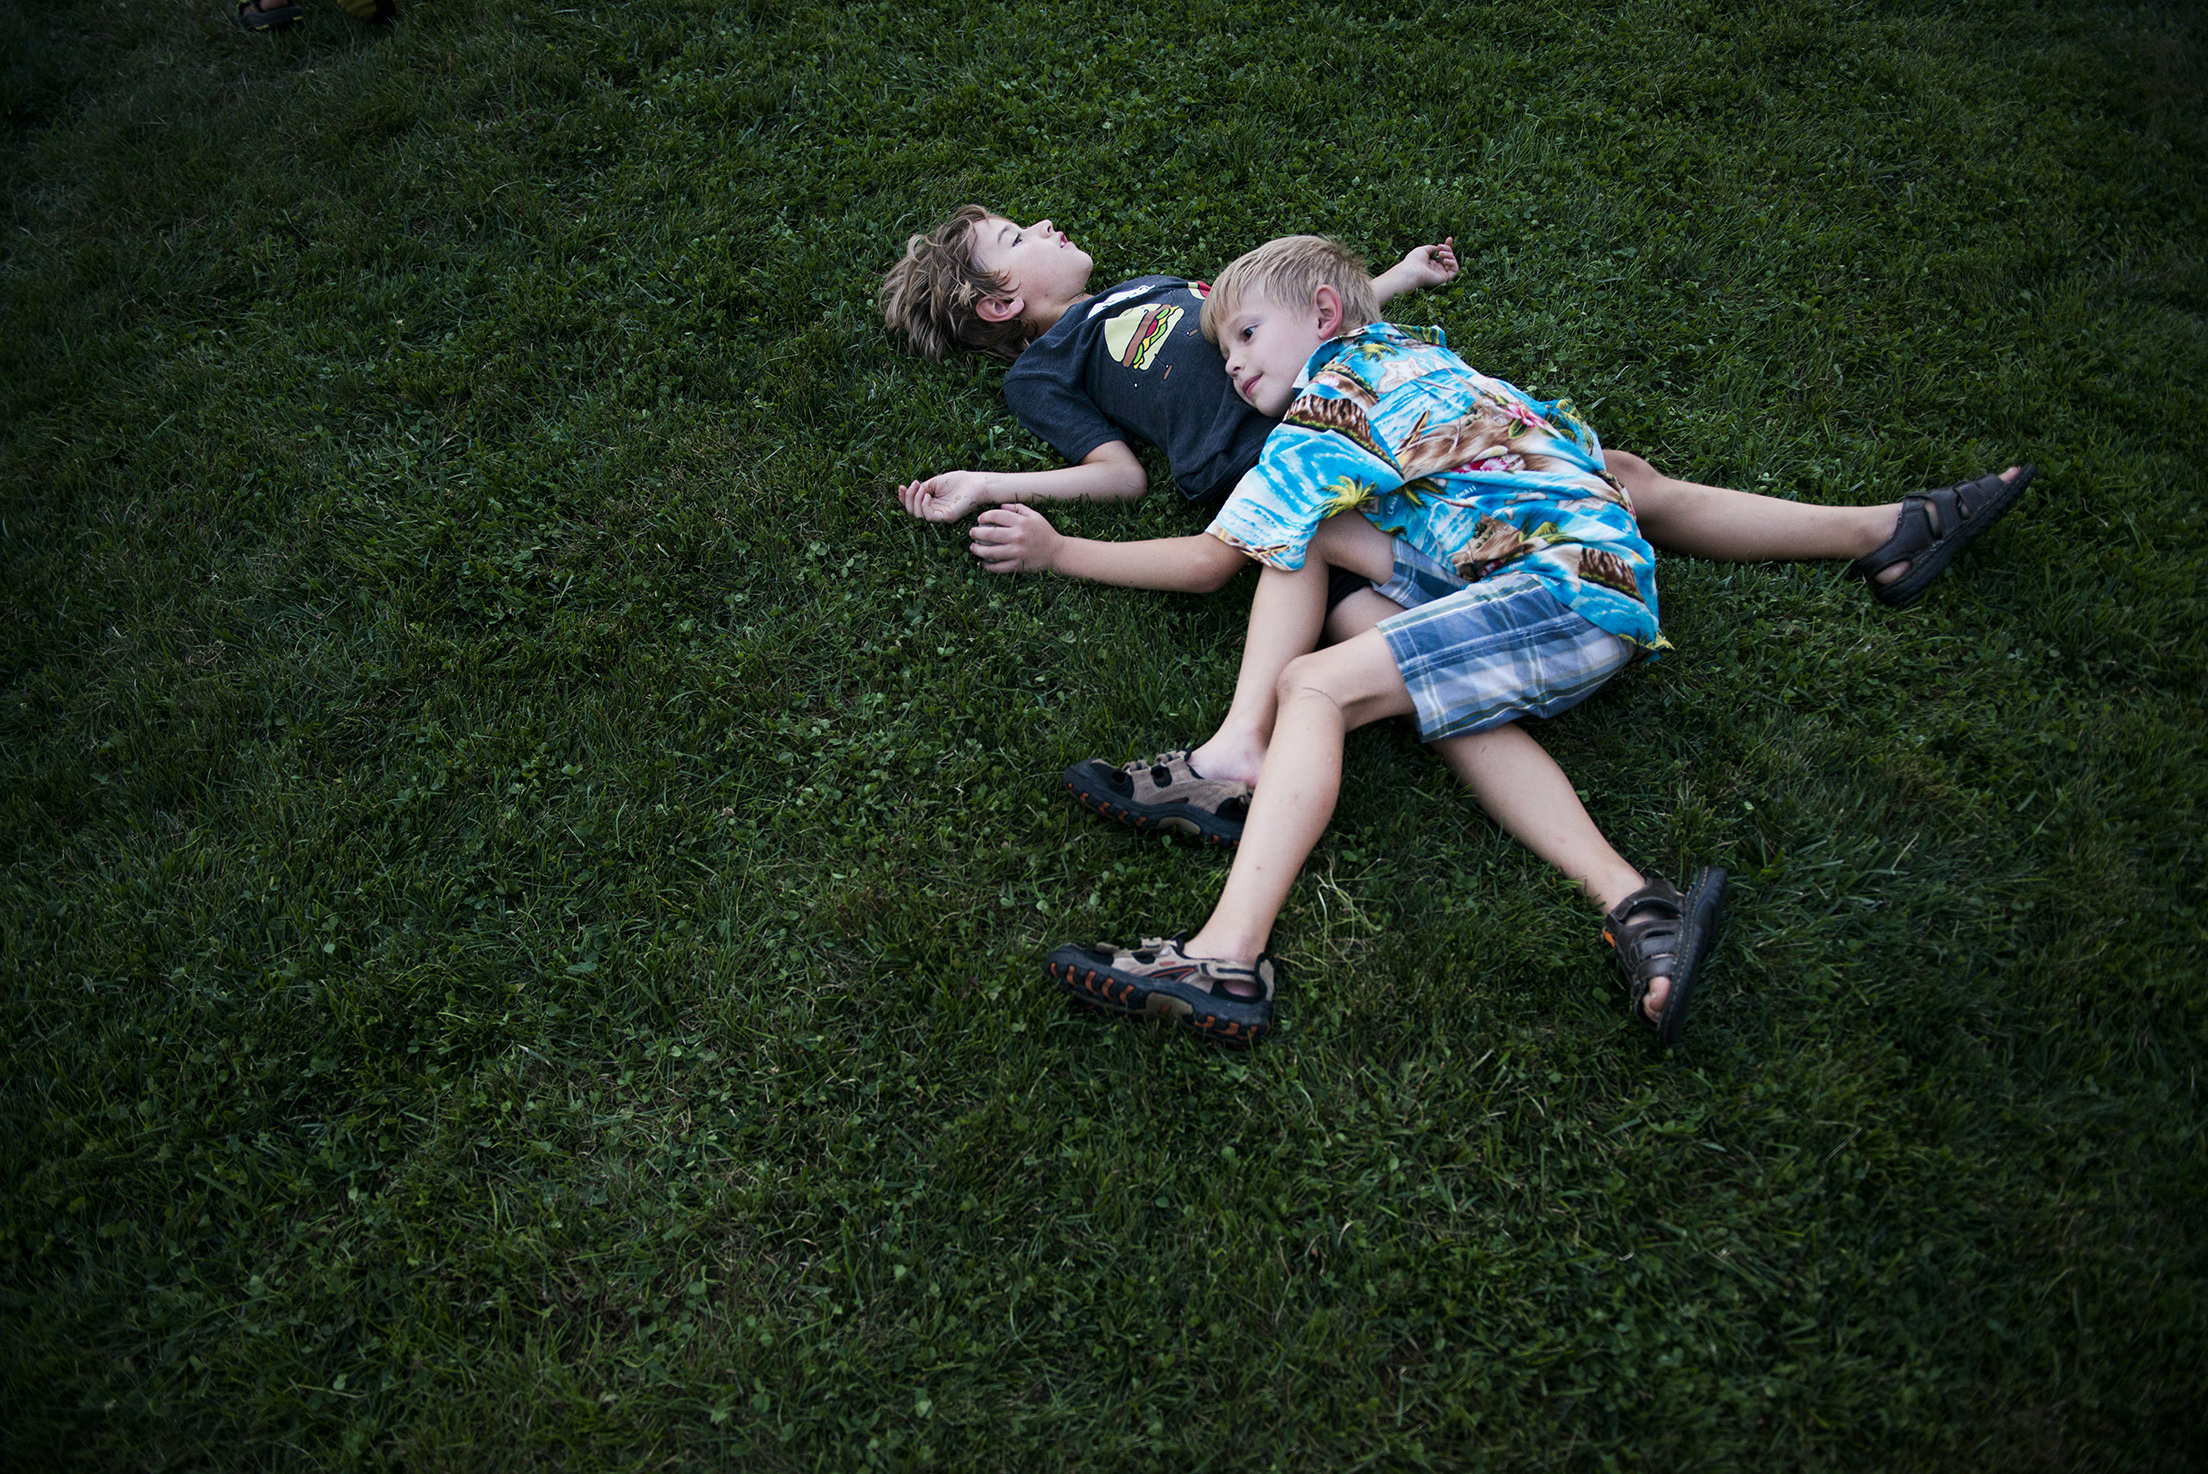 "Miles Makosky and Jonas Beasley, both 7, rest after wrestling together in the grass at Final Fridays on the Square in Nelsonville, Ohio on Friday, August 29, 2014. ""We're going to have a sleep over later,"" said Jonas."